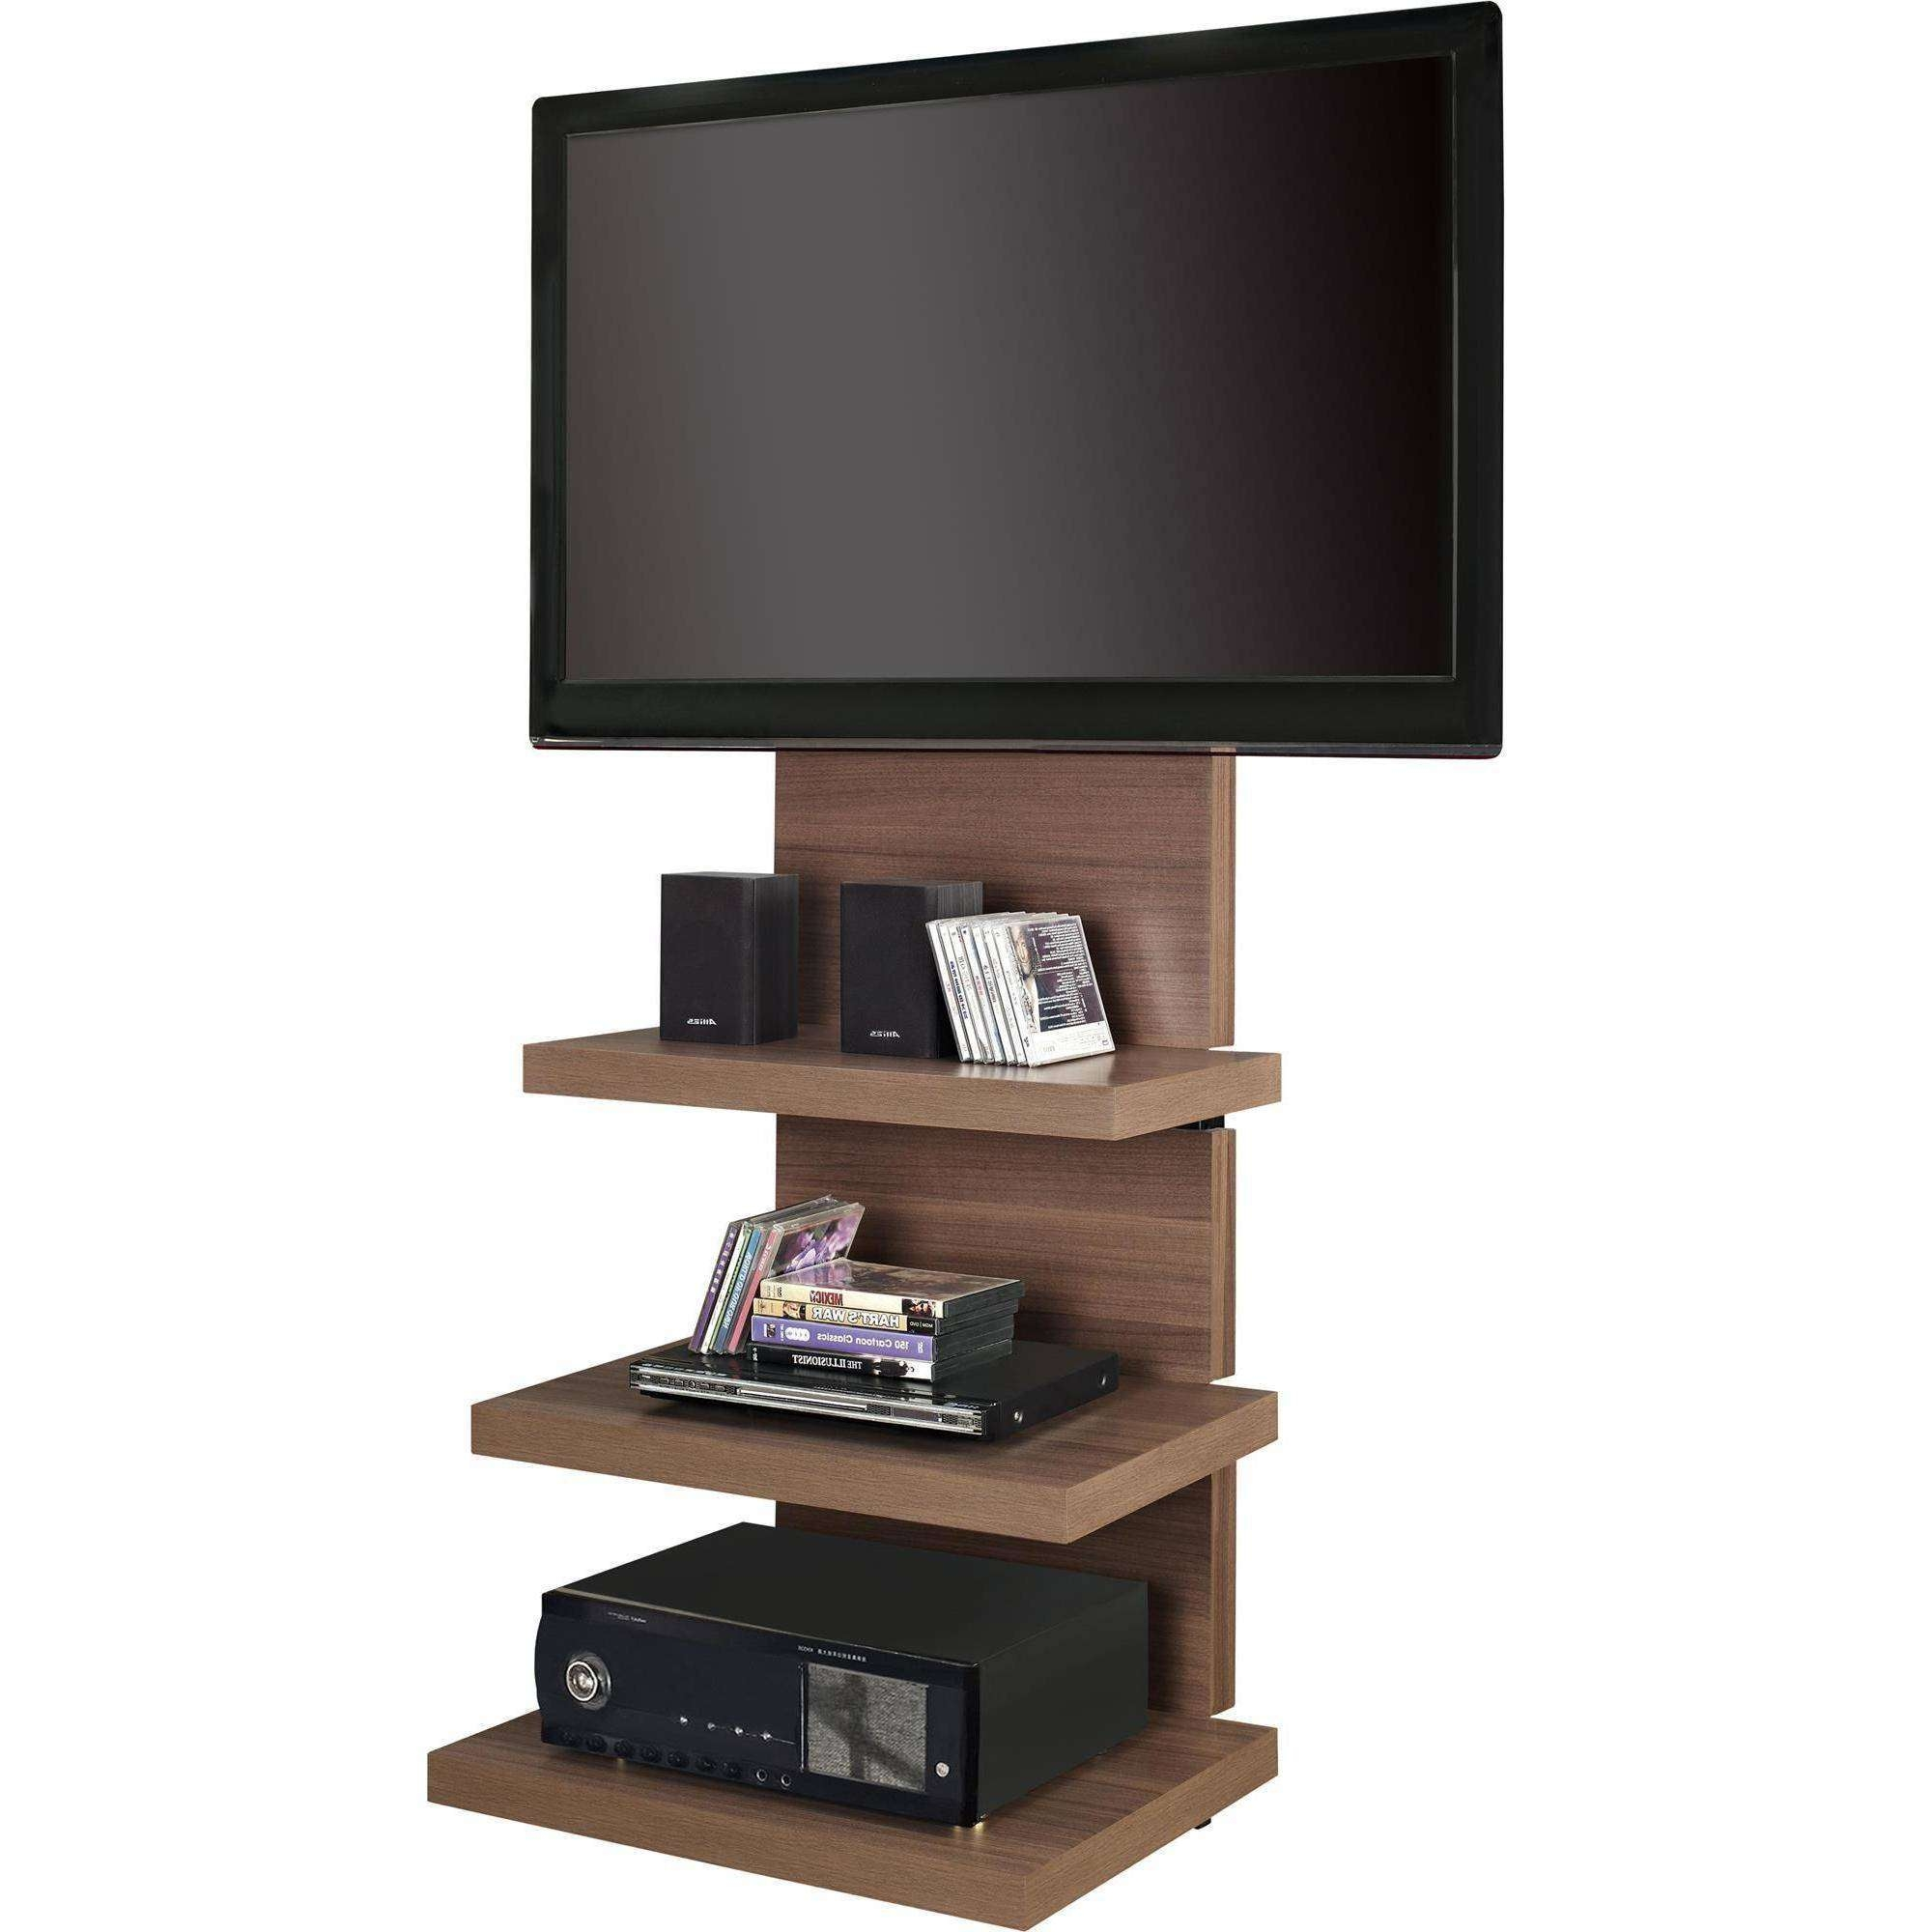 Ameriwood Home Elevation Altramount Tv Stand For Tvs Up To 60 With Modern Tv Stands For 60 Inch Tvs (View 8 of 15)